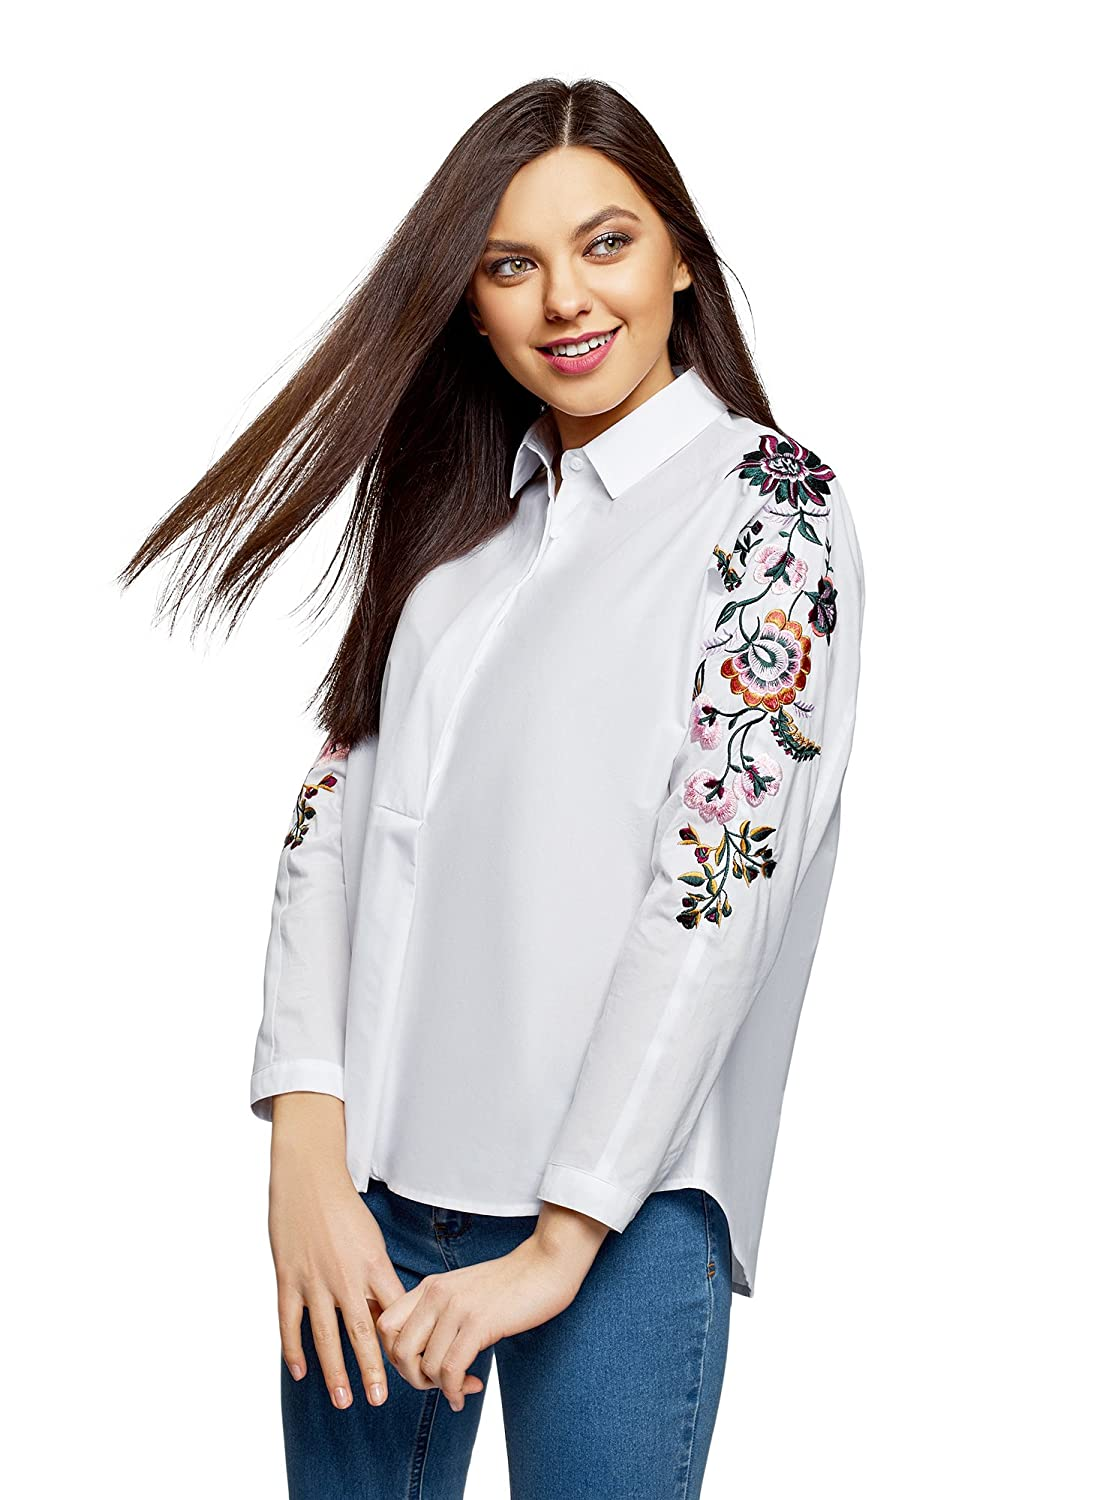 White (1000n) oodji Ultra Women's Embroidered Cotton Shirt